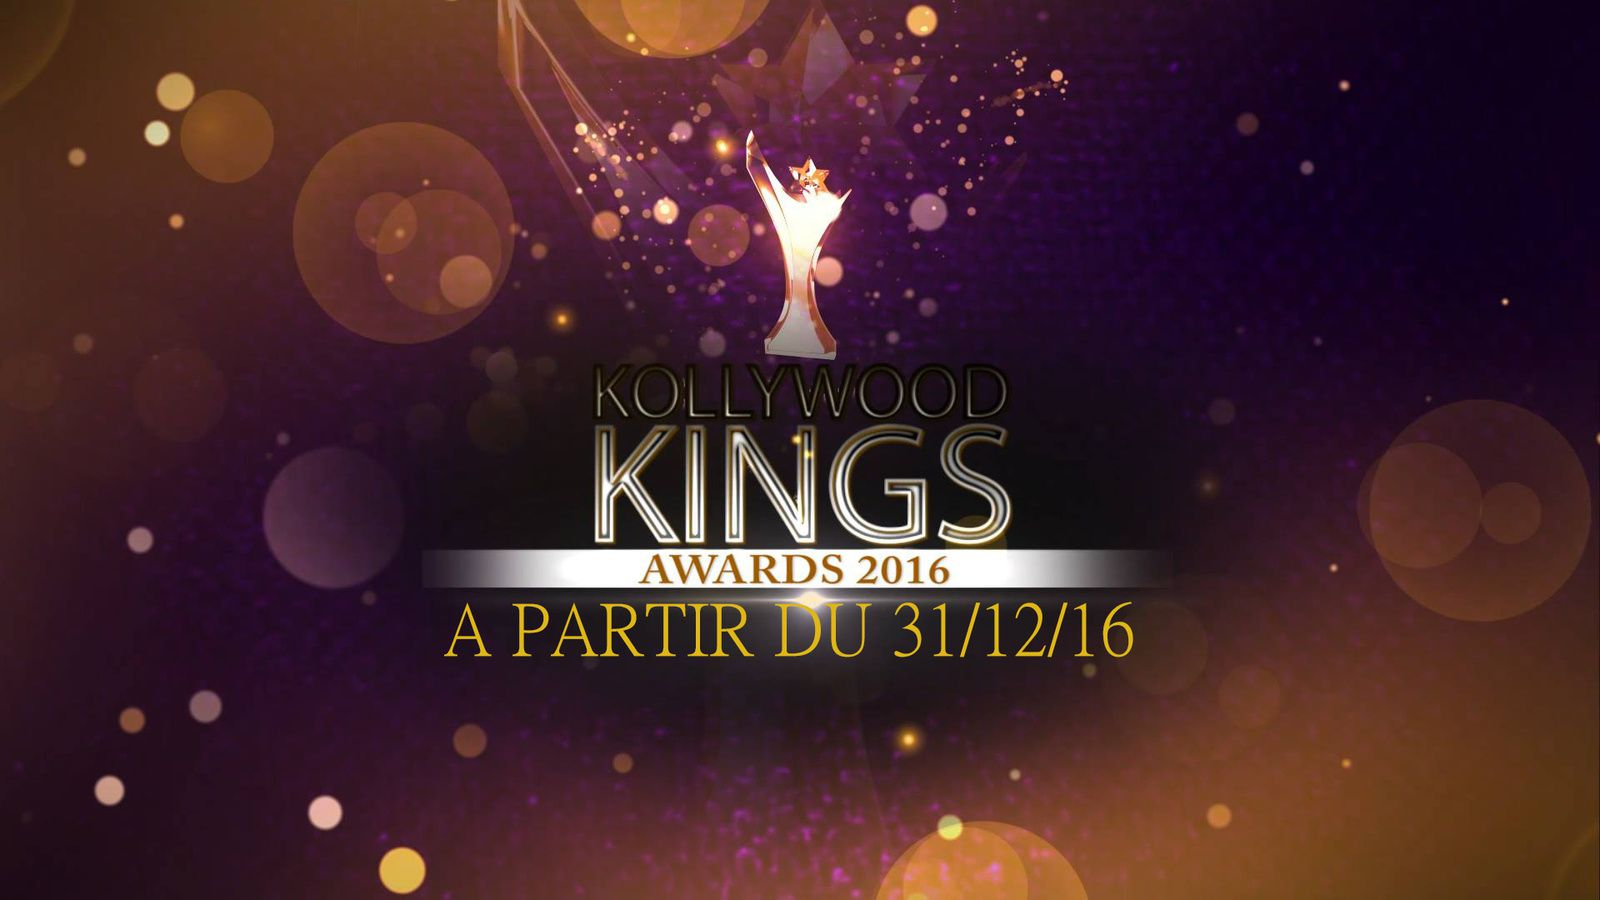 KOLLYWOOD KINGS AWARDS 2016 PROMO